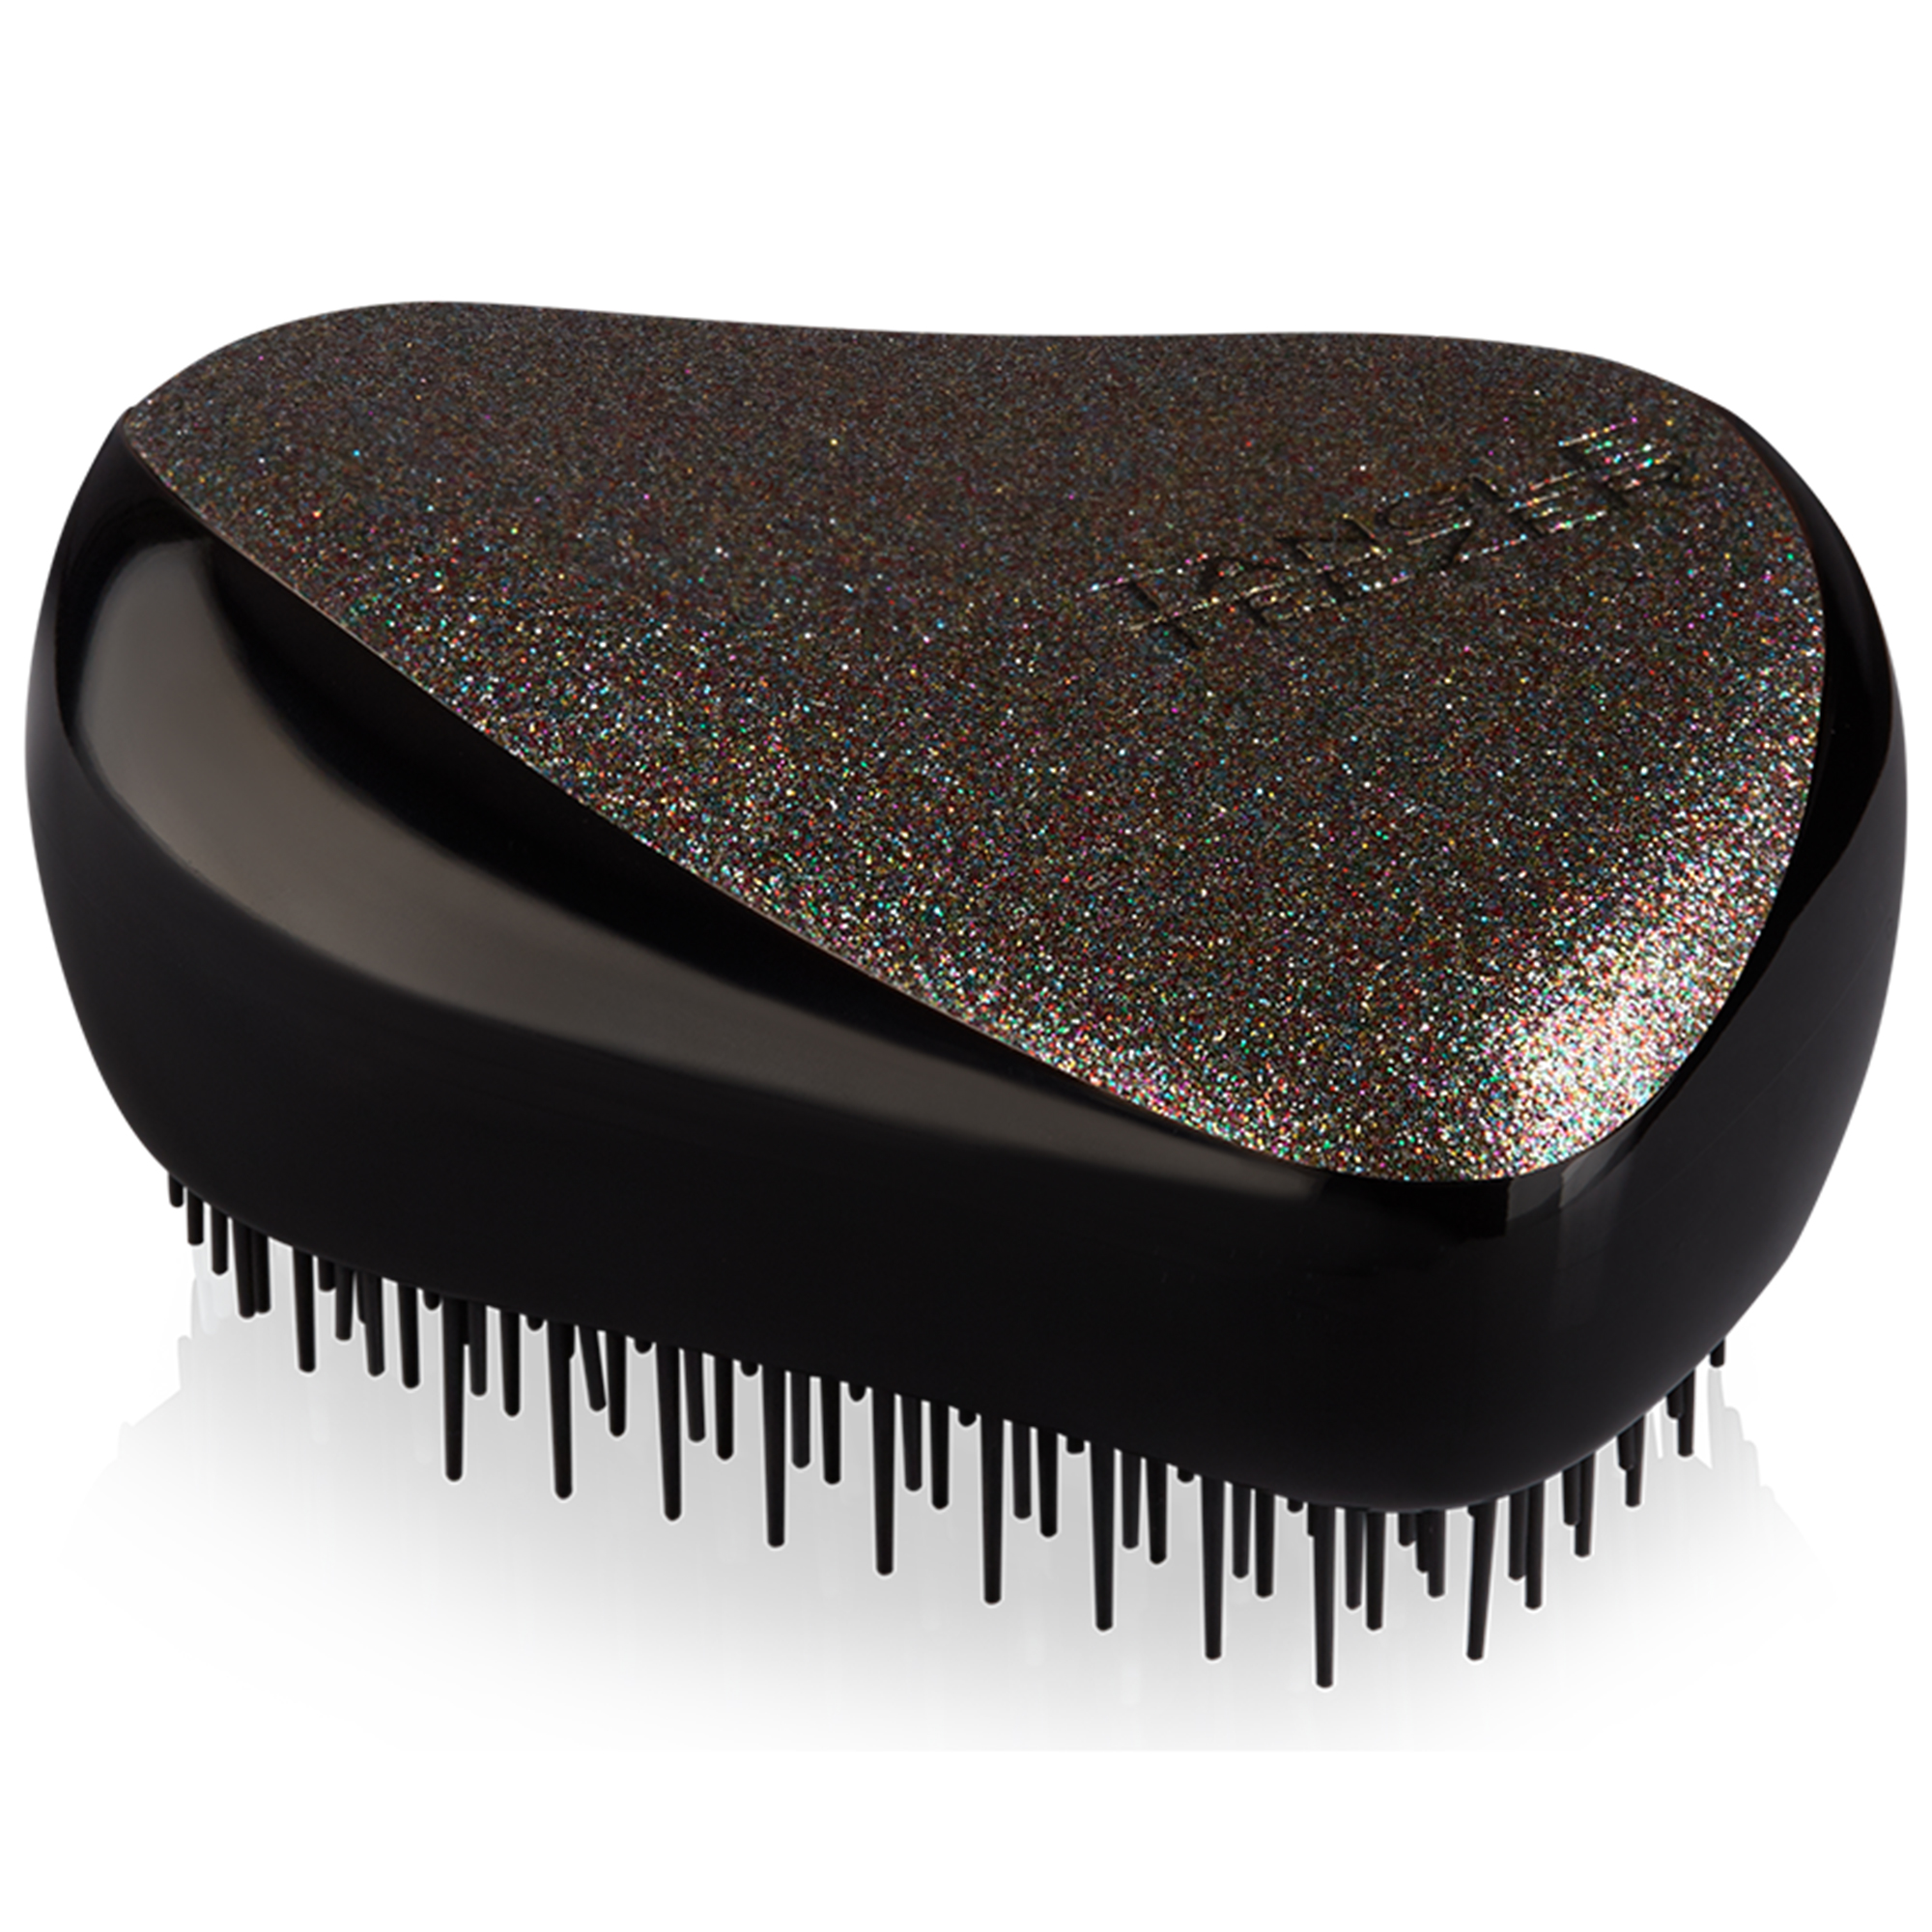 Tangle Teezer Glitter Gem Compact Styler Hairbrush